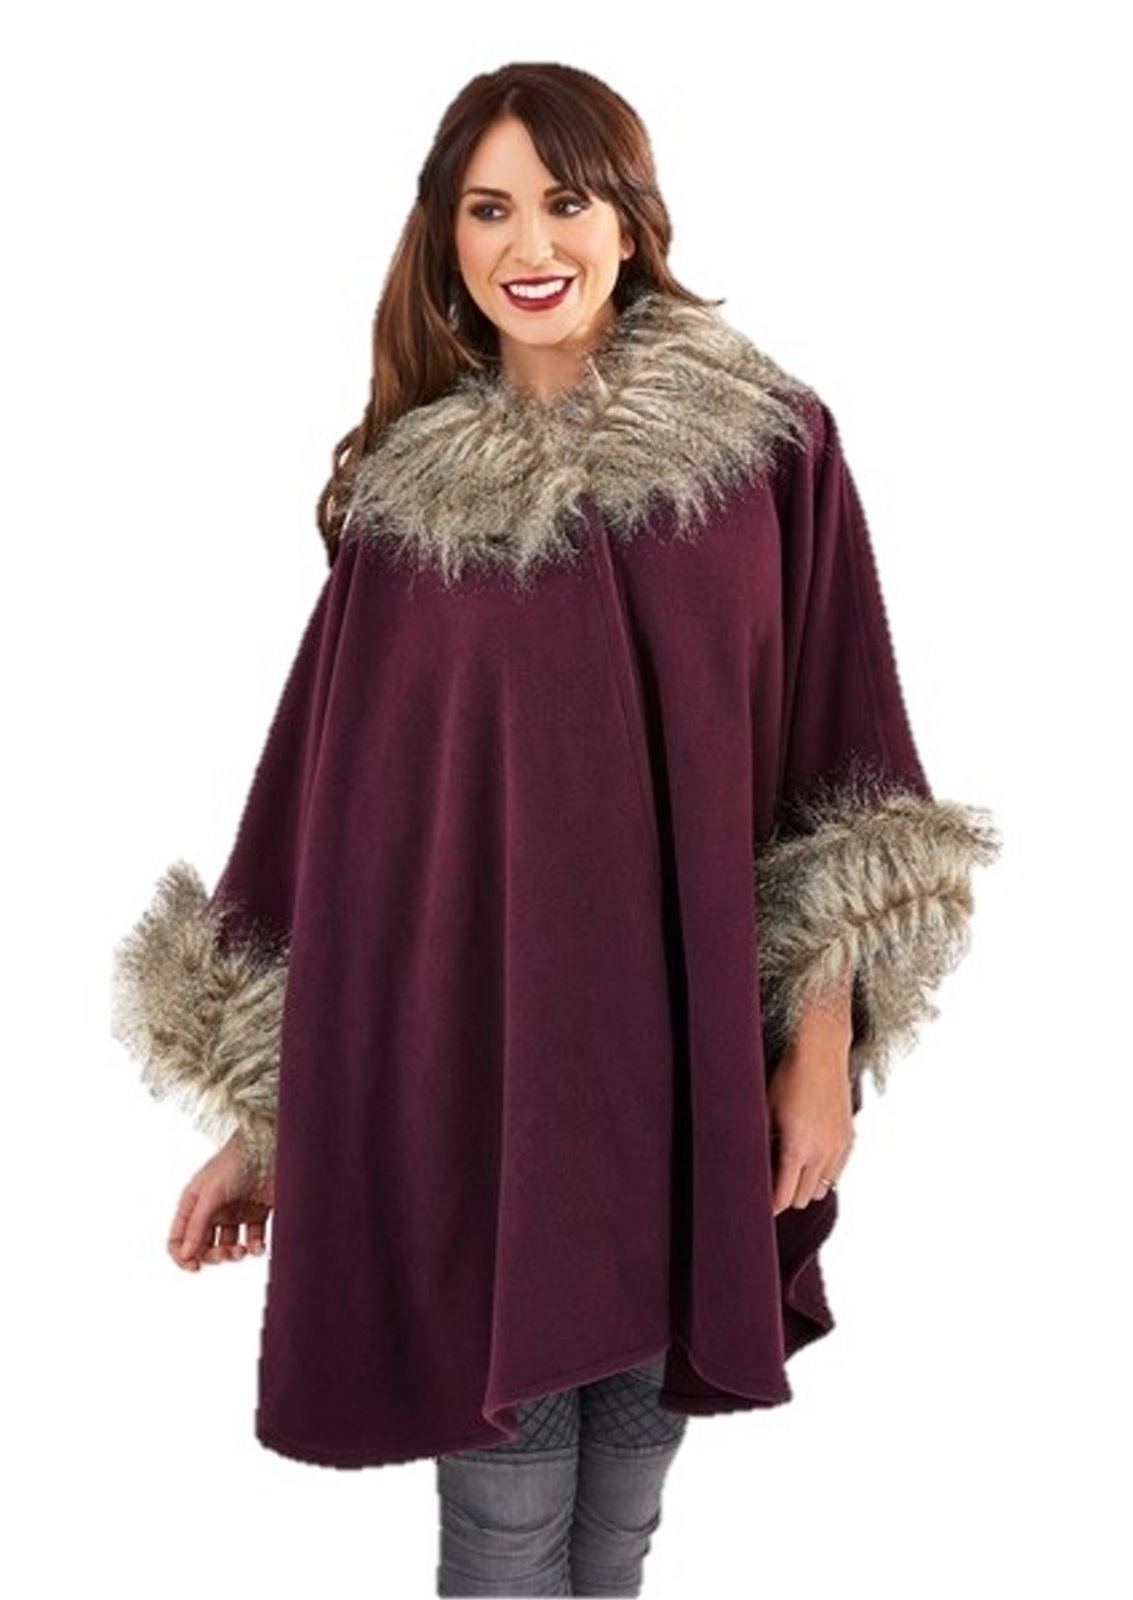 Our women's capes and ponchos are lovingly constructed of only the finest materials. We take great pride in offering a variety of women's cape styles to choose from, including everything from mink fur capes and cashmere capes to alpaca capes and rabbit fur capes.